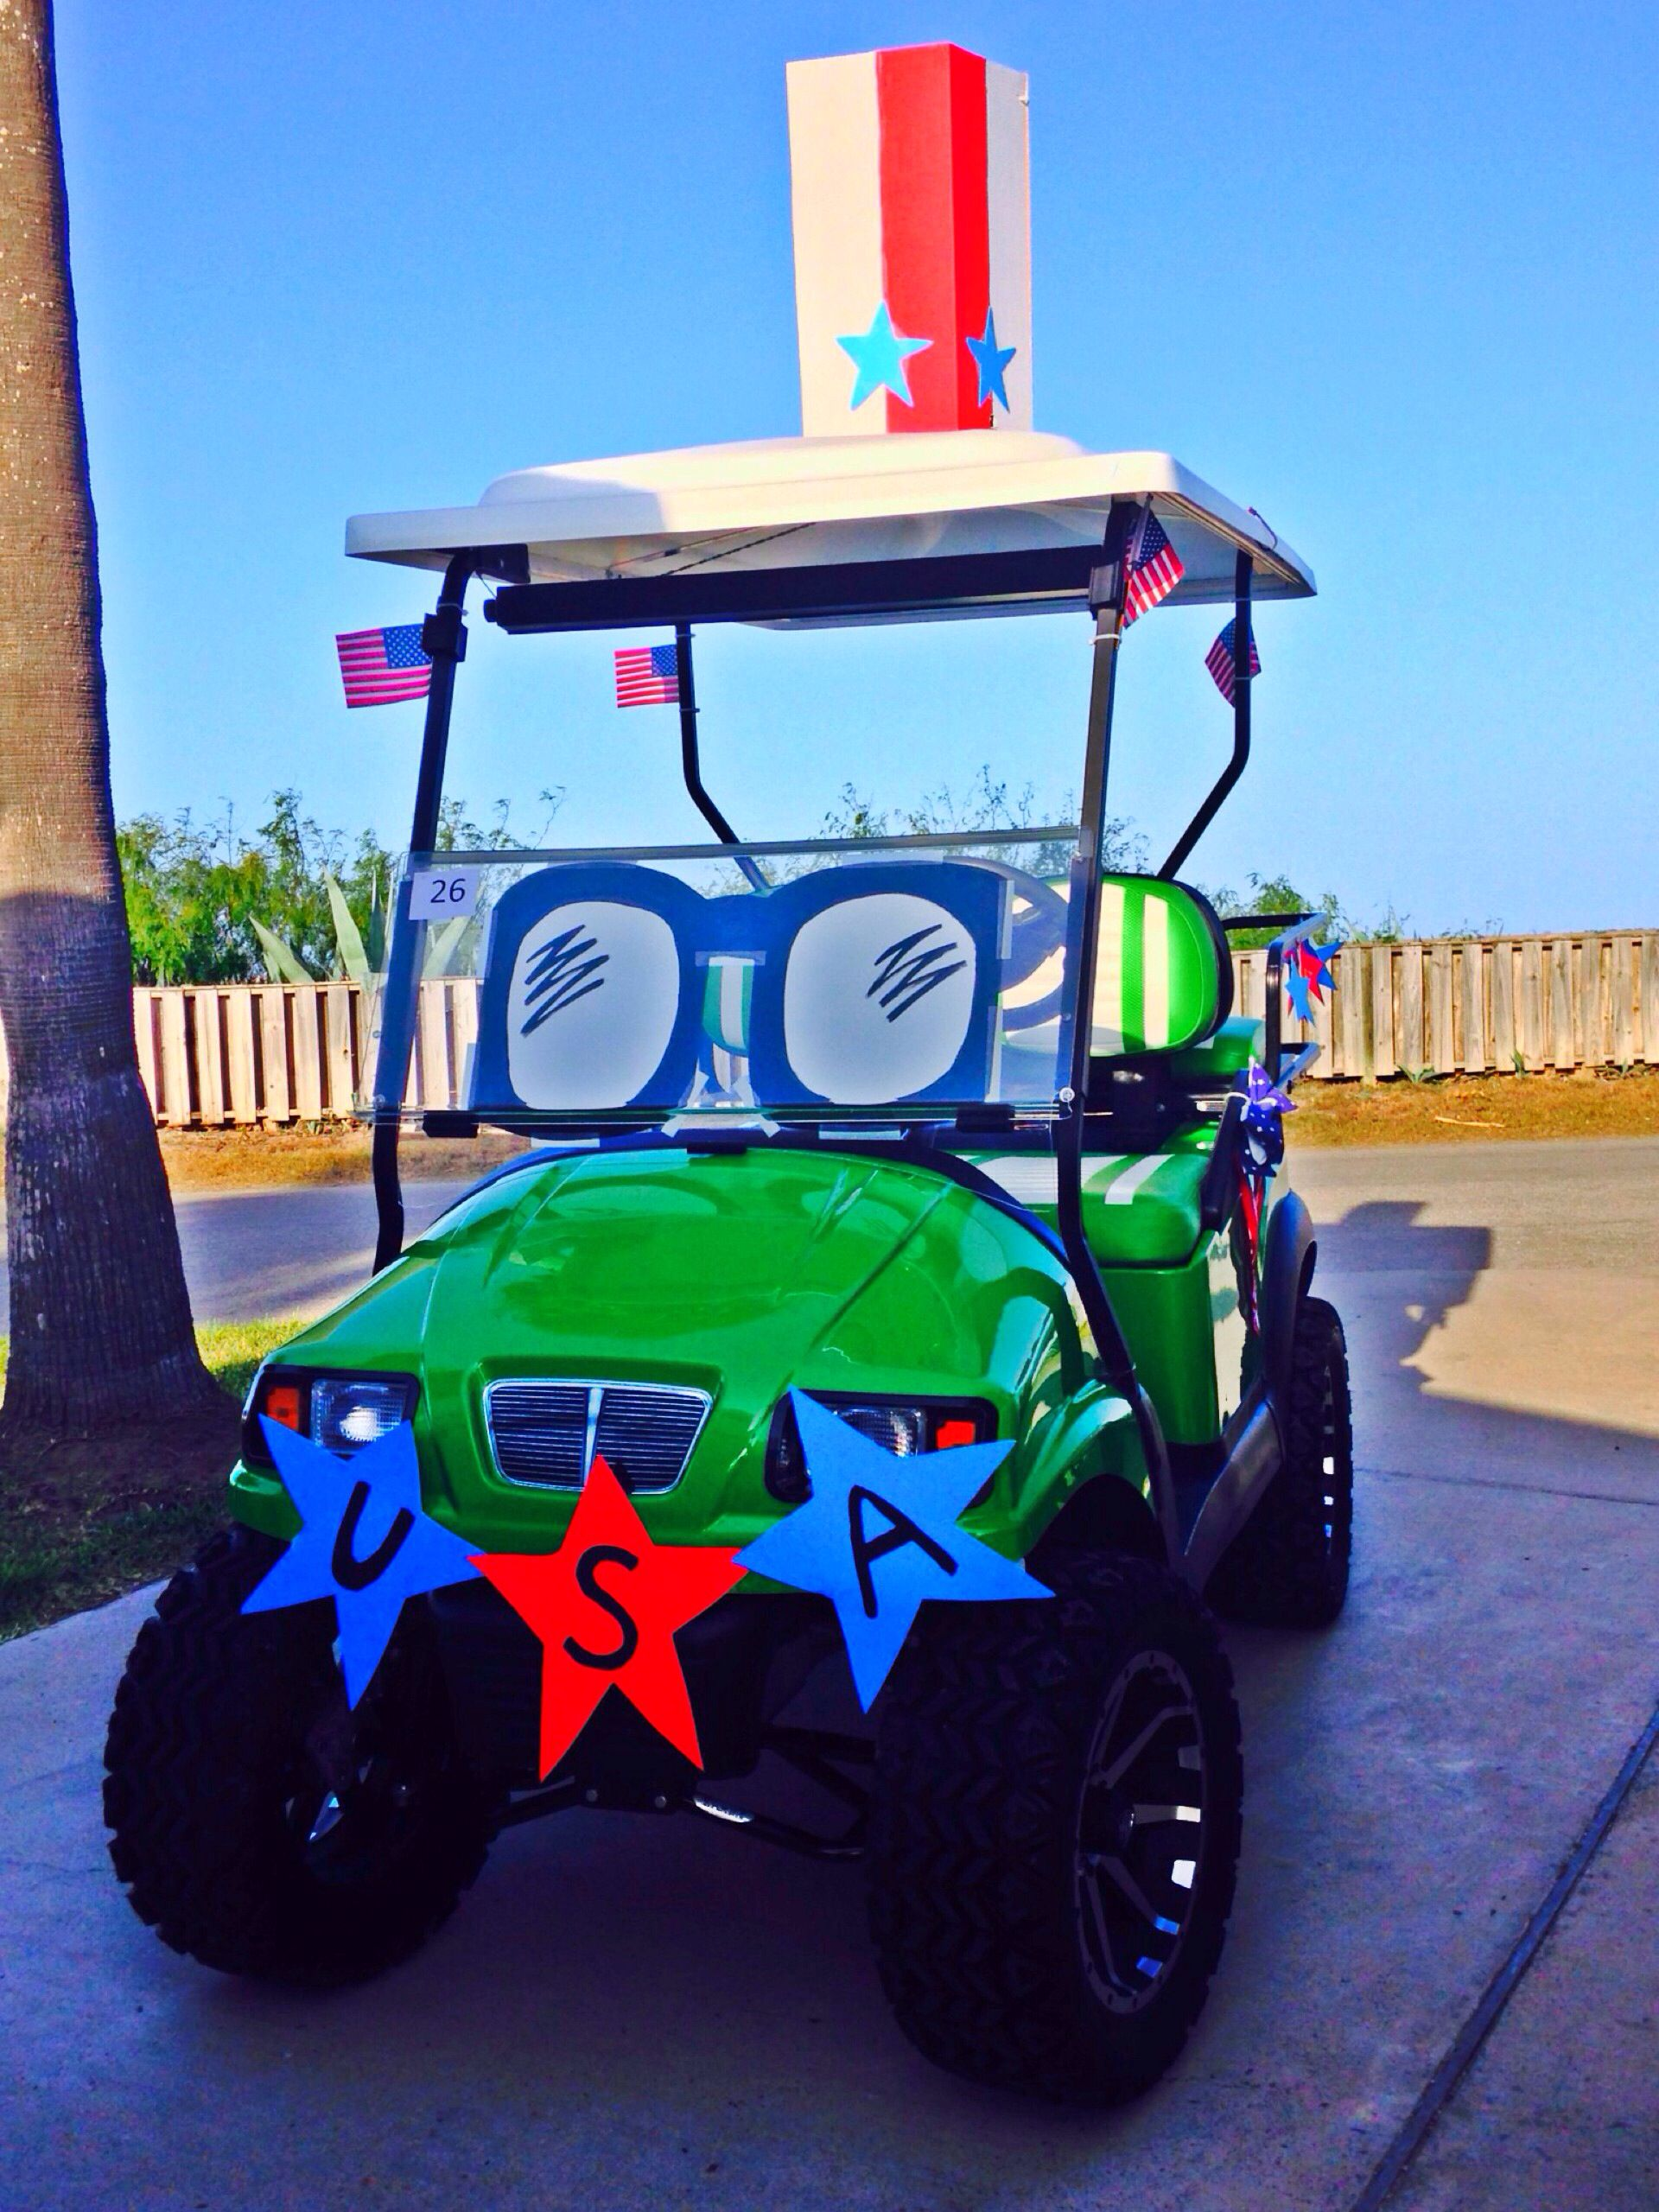 Patriotic golf cart | Float in 2018 | Pinterest | Golf carts, Golf on